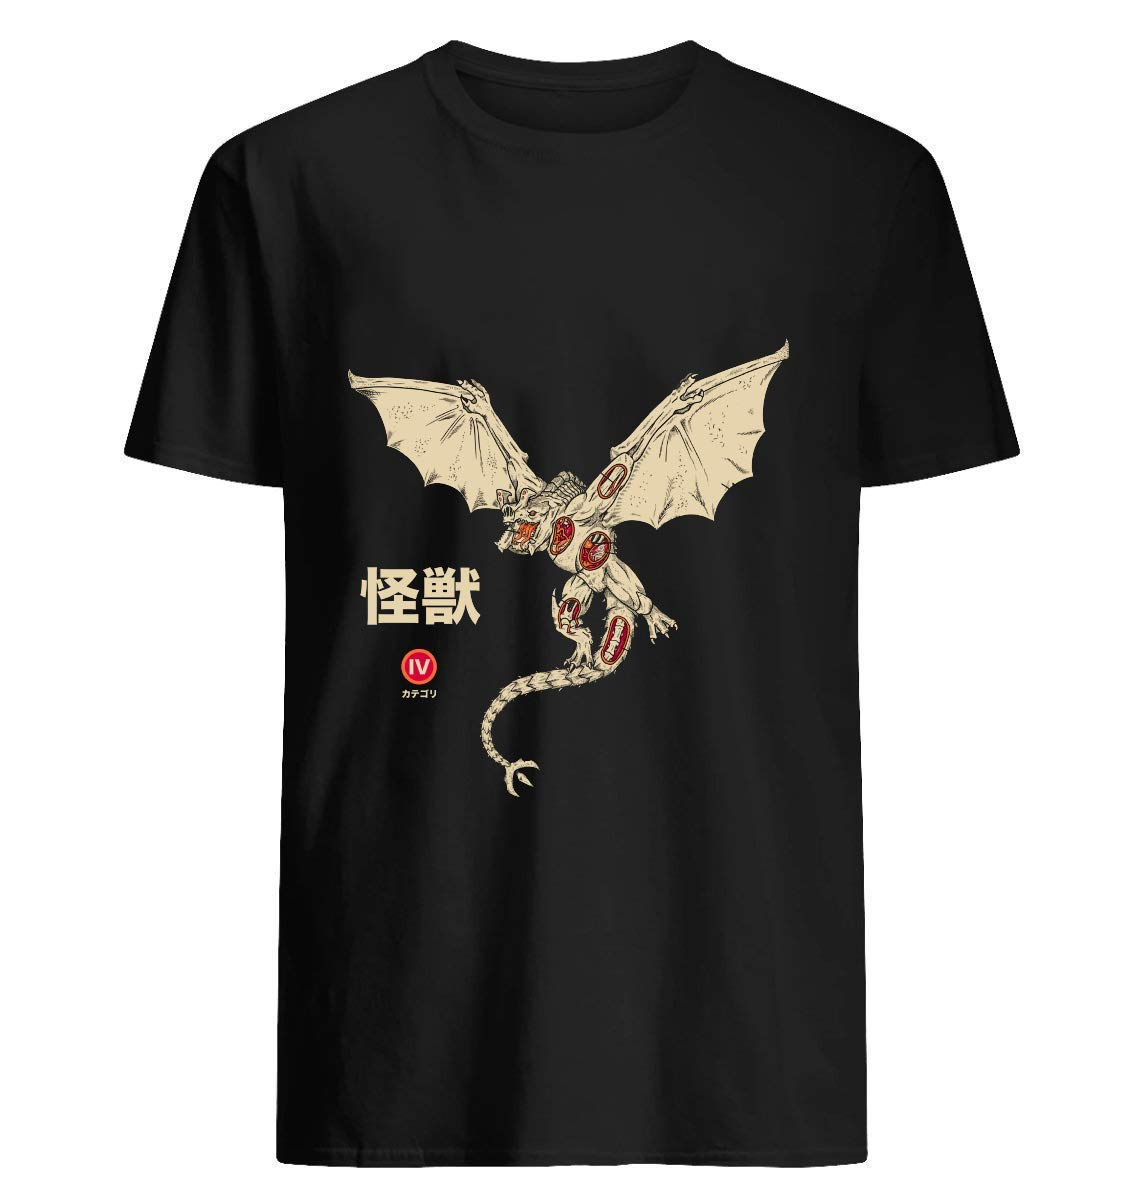 Kaiju Anatomie 2 16 For Men Women Unisex Shirts